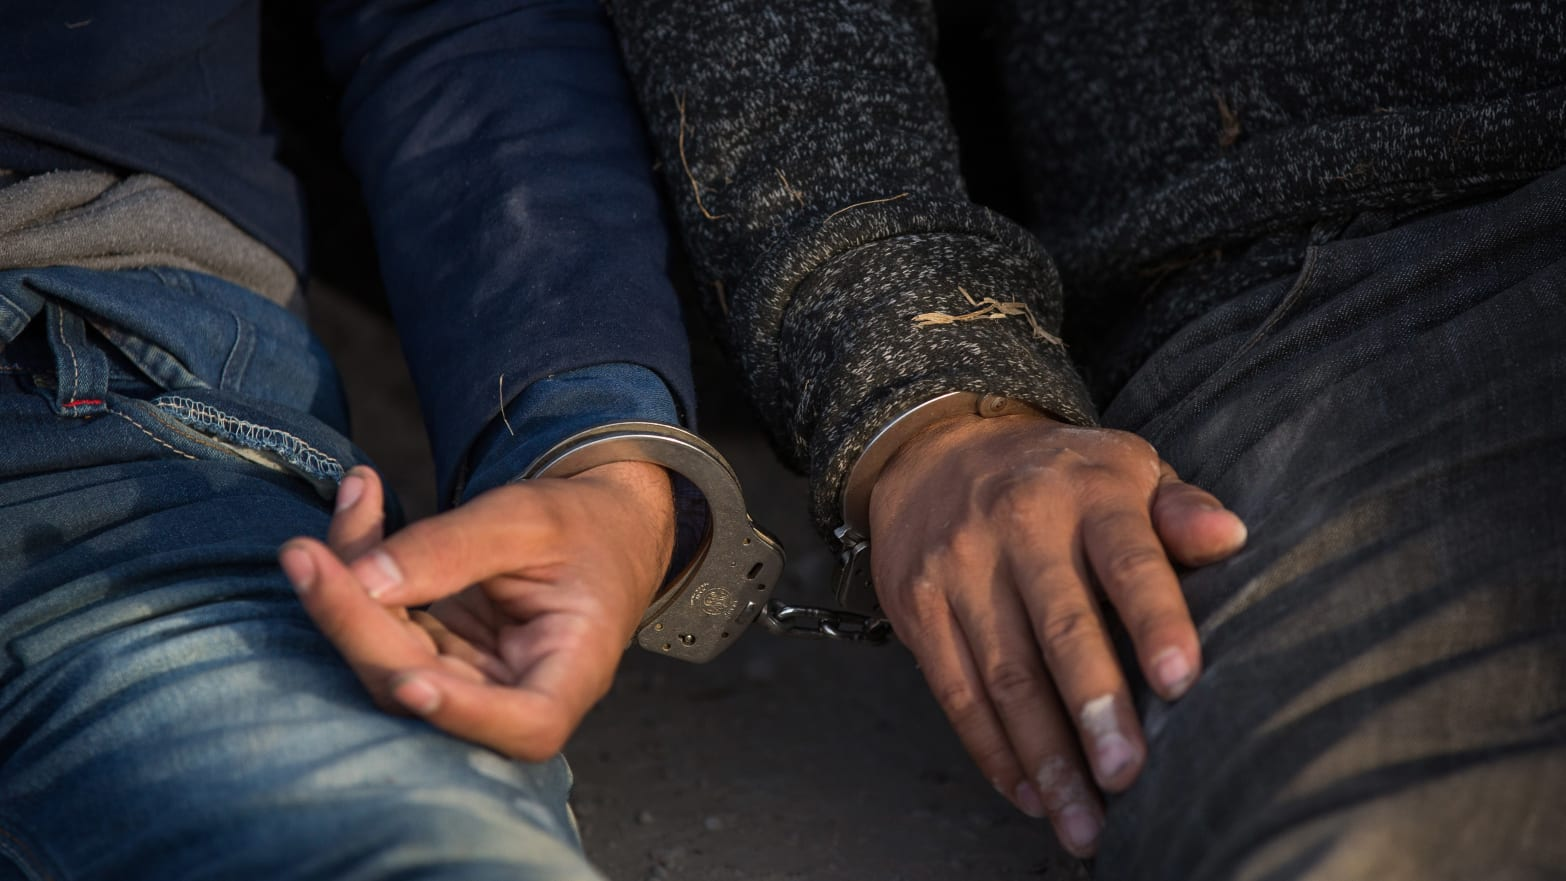 image of two men handcuffed to each other myth of criminal immigrant migrant caravan undocumented mexico central america